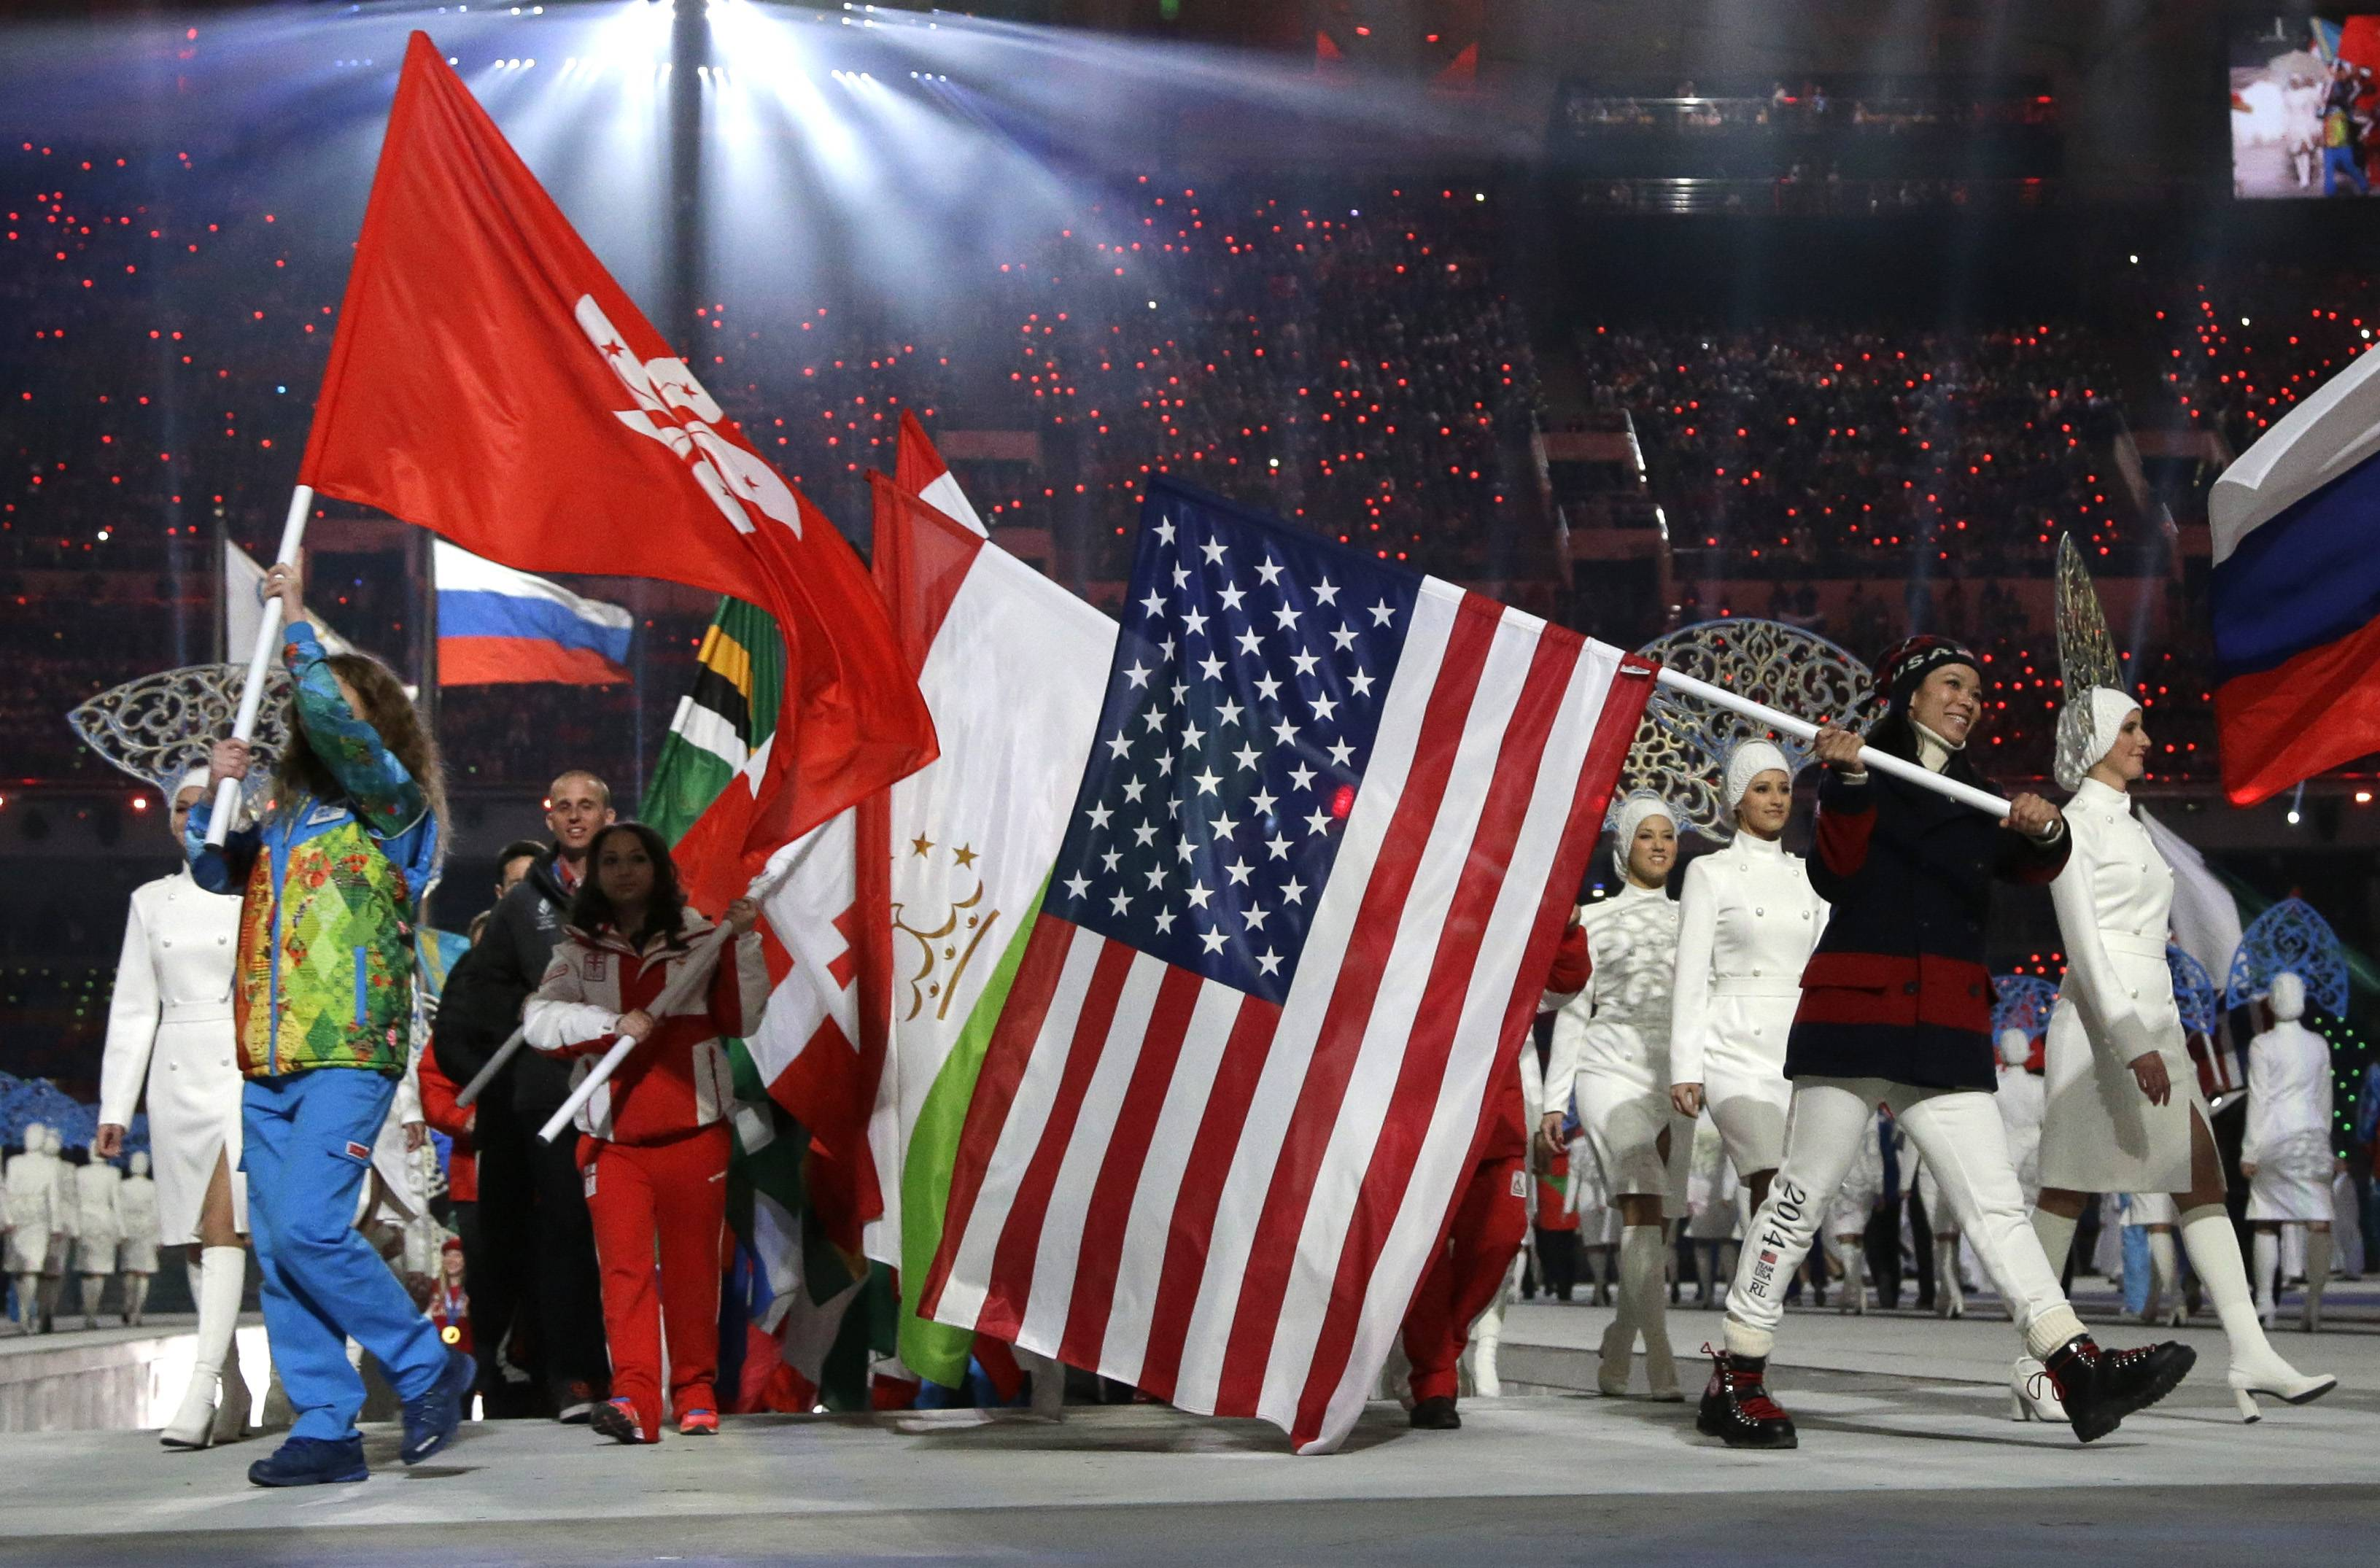 United States' Julie Chu, right, carries the flag during the closing ceremony of the 2014 Winter Olympics, Sunday, Feb. 23, 2014, in Sochi, Russia.